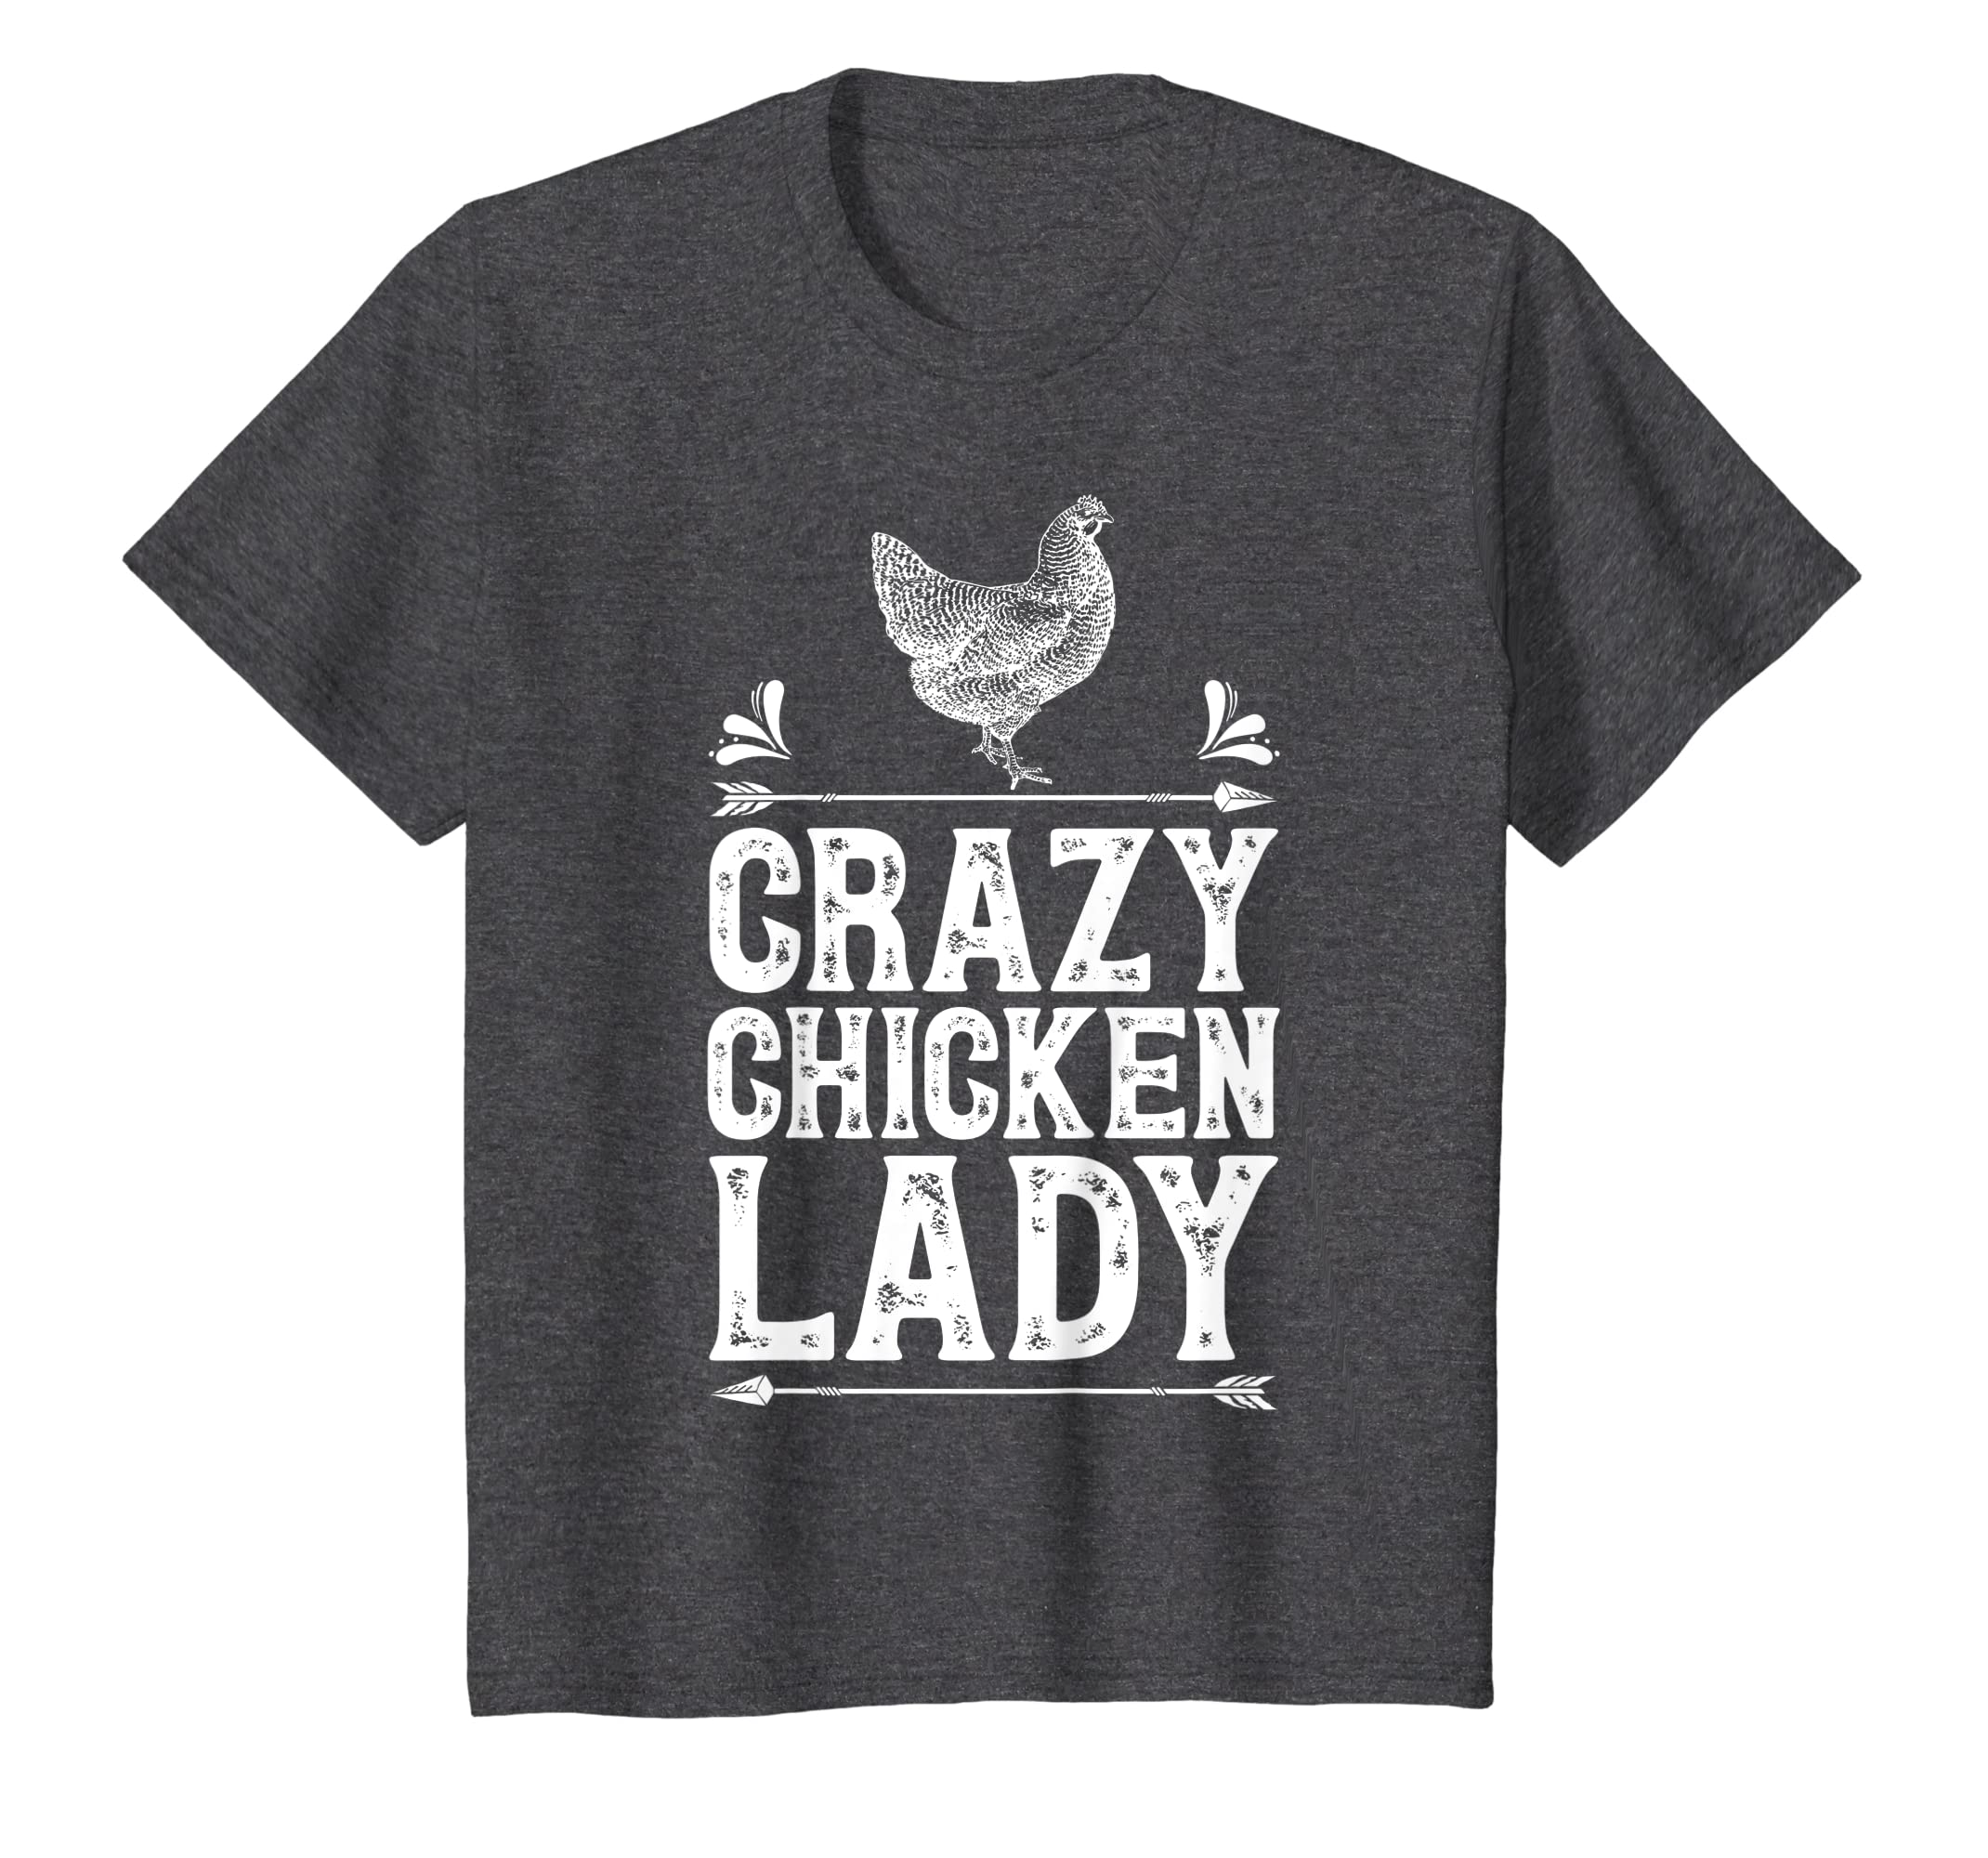 ccf88ab1d Amazon.com: Crazy Chicken Lady T Shirt Funny Farm Poultry Farmer Gifts:  Clothing